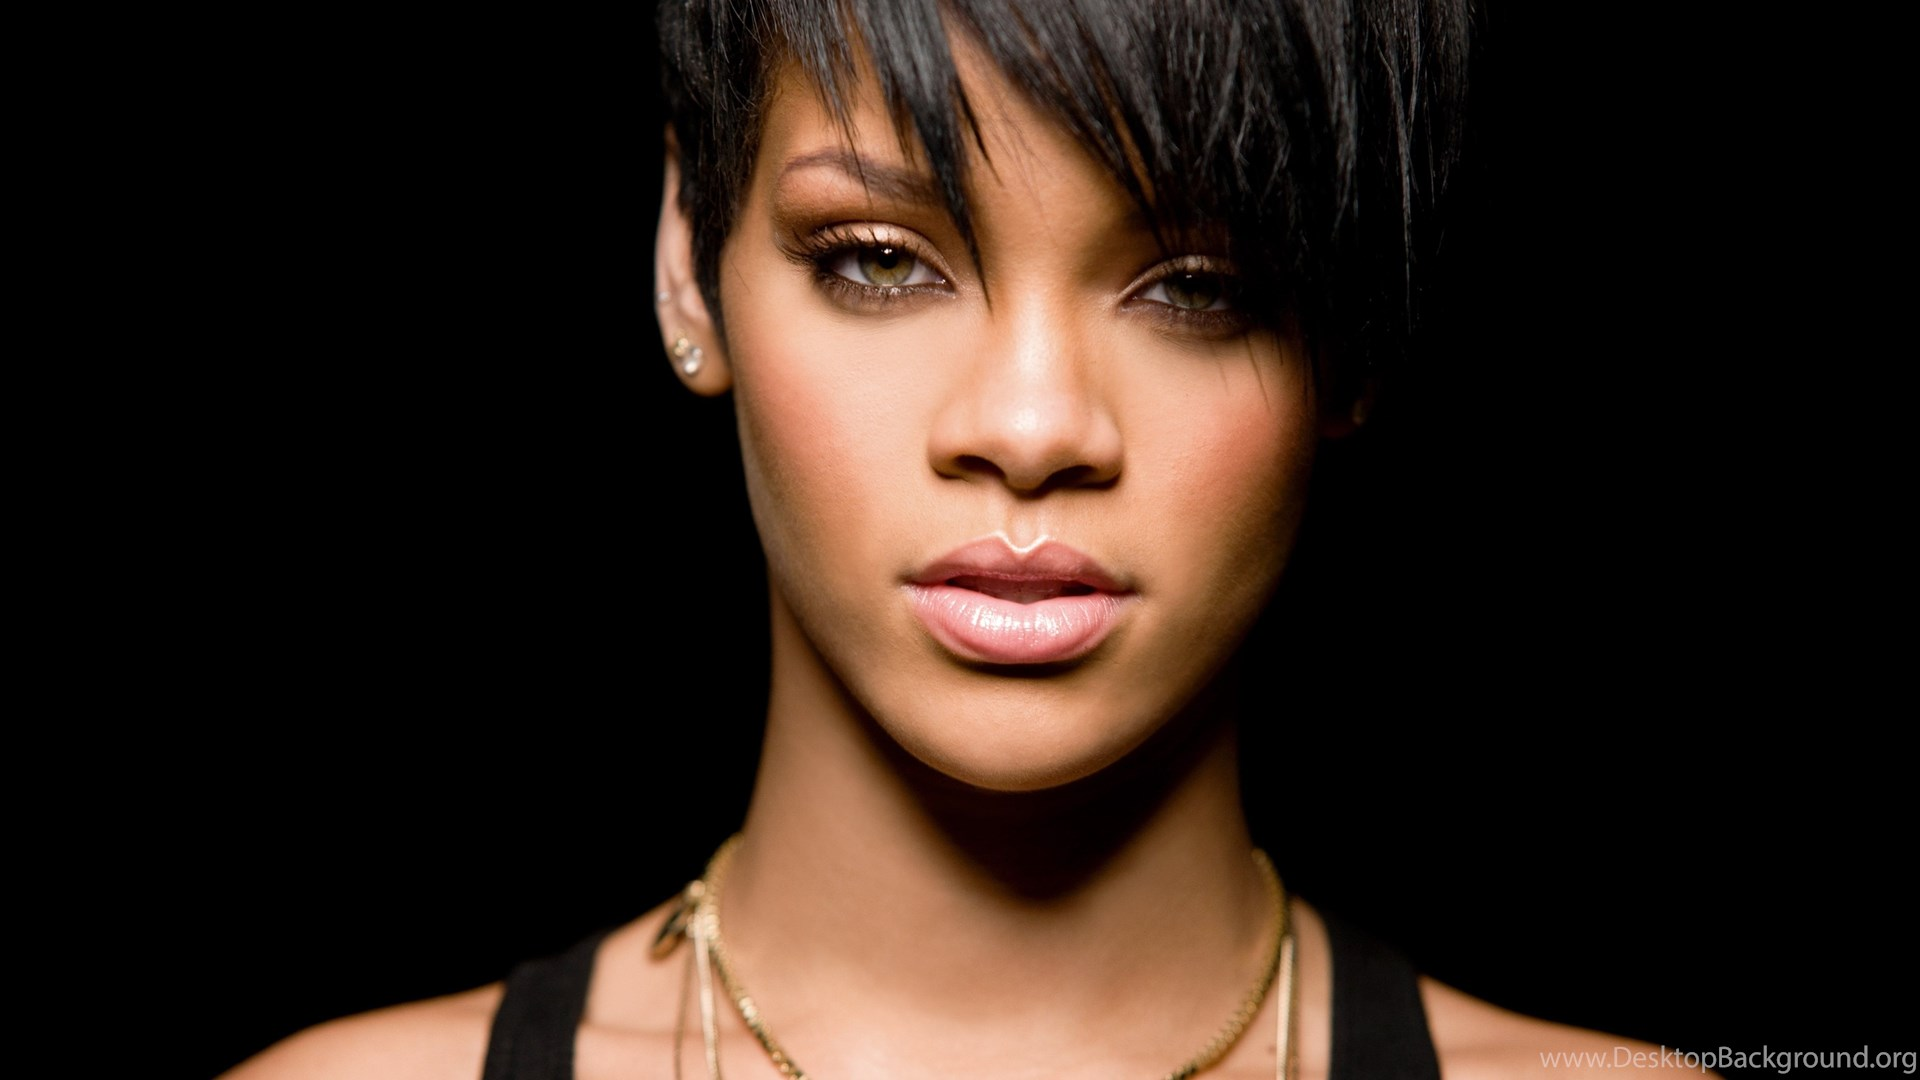 Rihanna, Black, Face, Short Hair, Dark Hair, Women, Singer ...